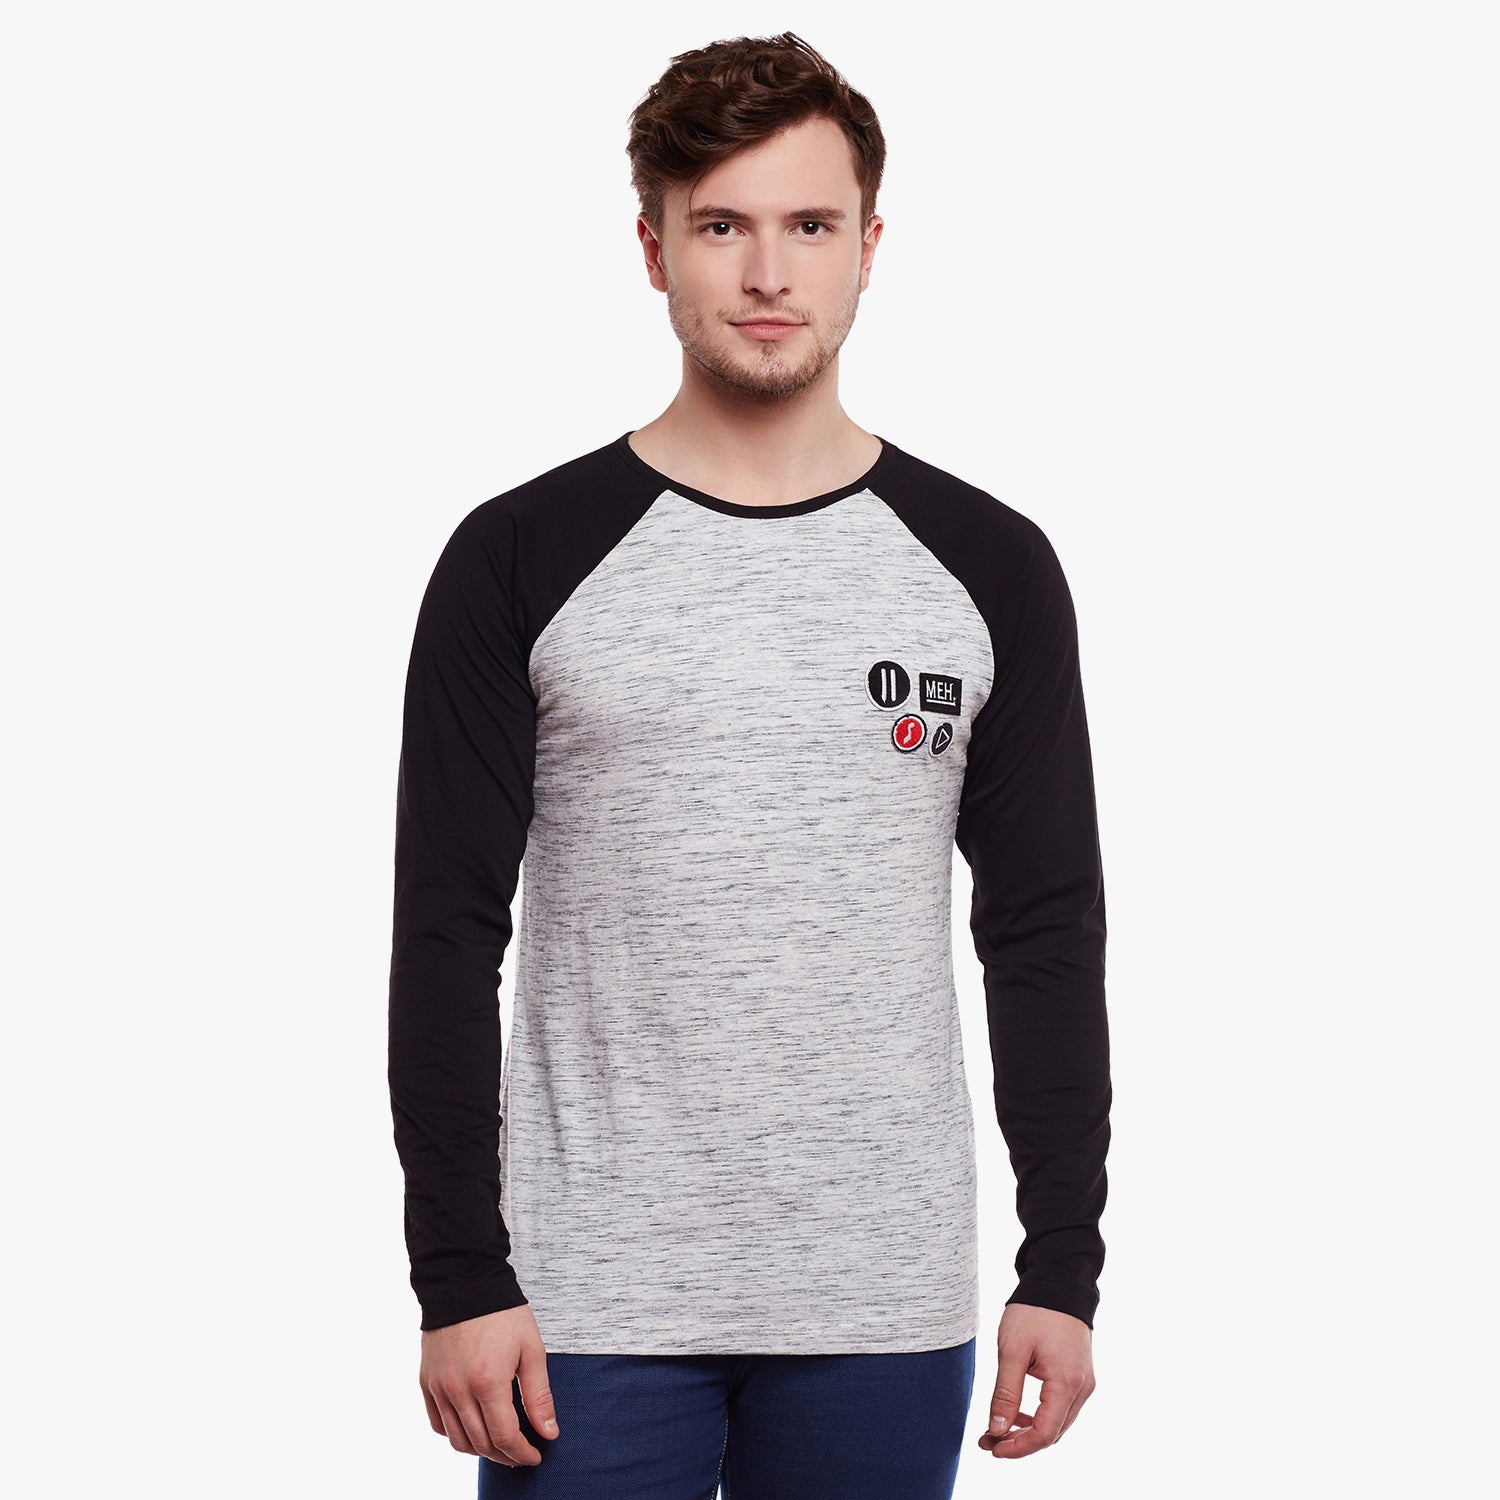 Atorse Full Raglon sleeve T-shirt